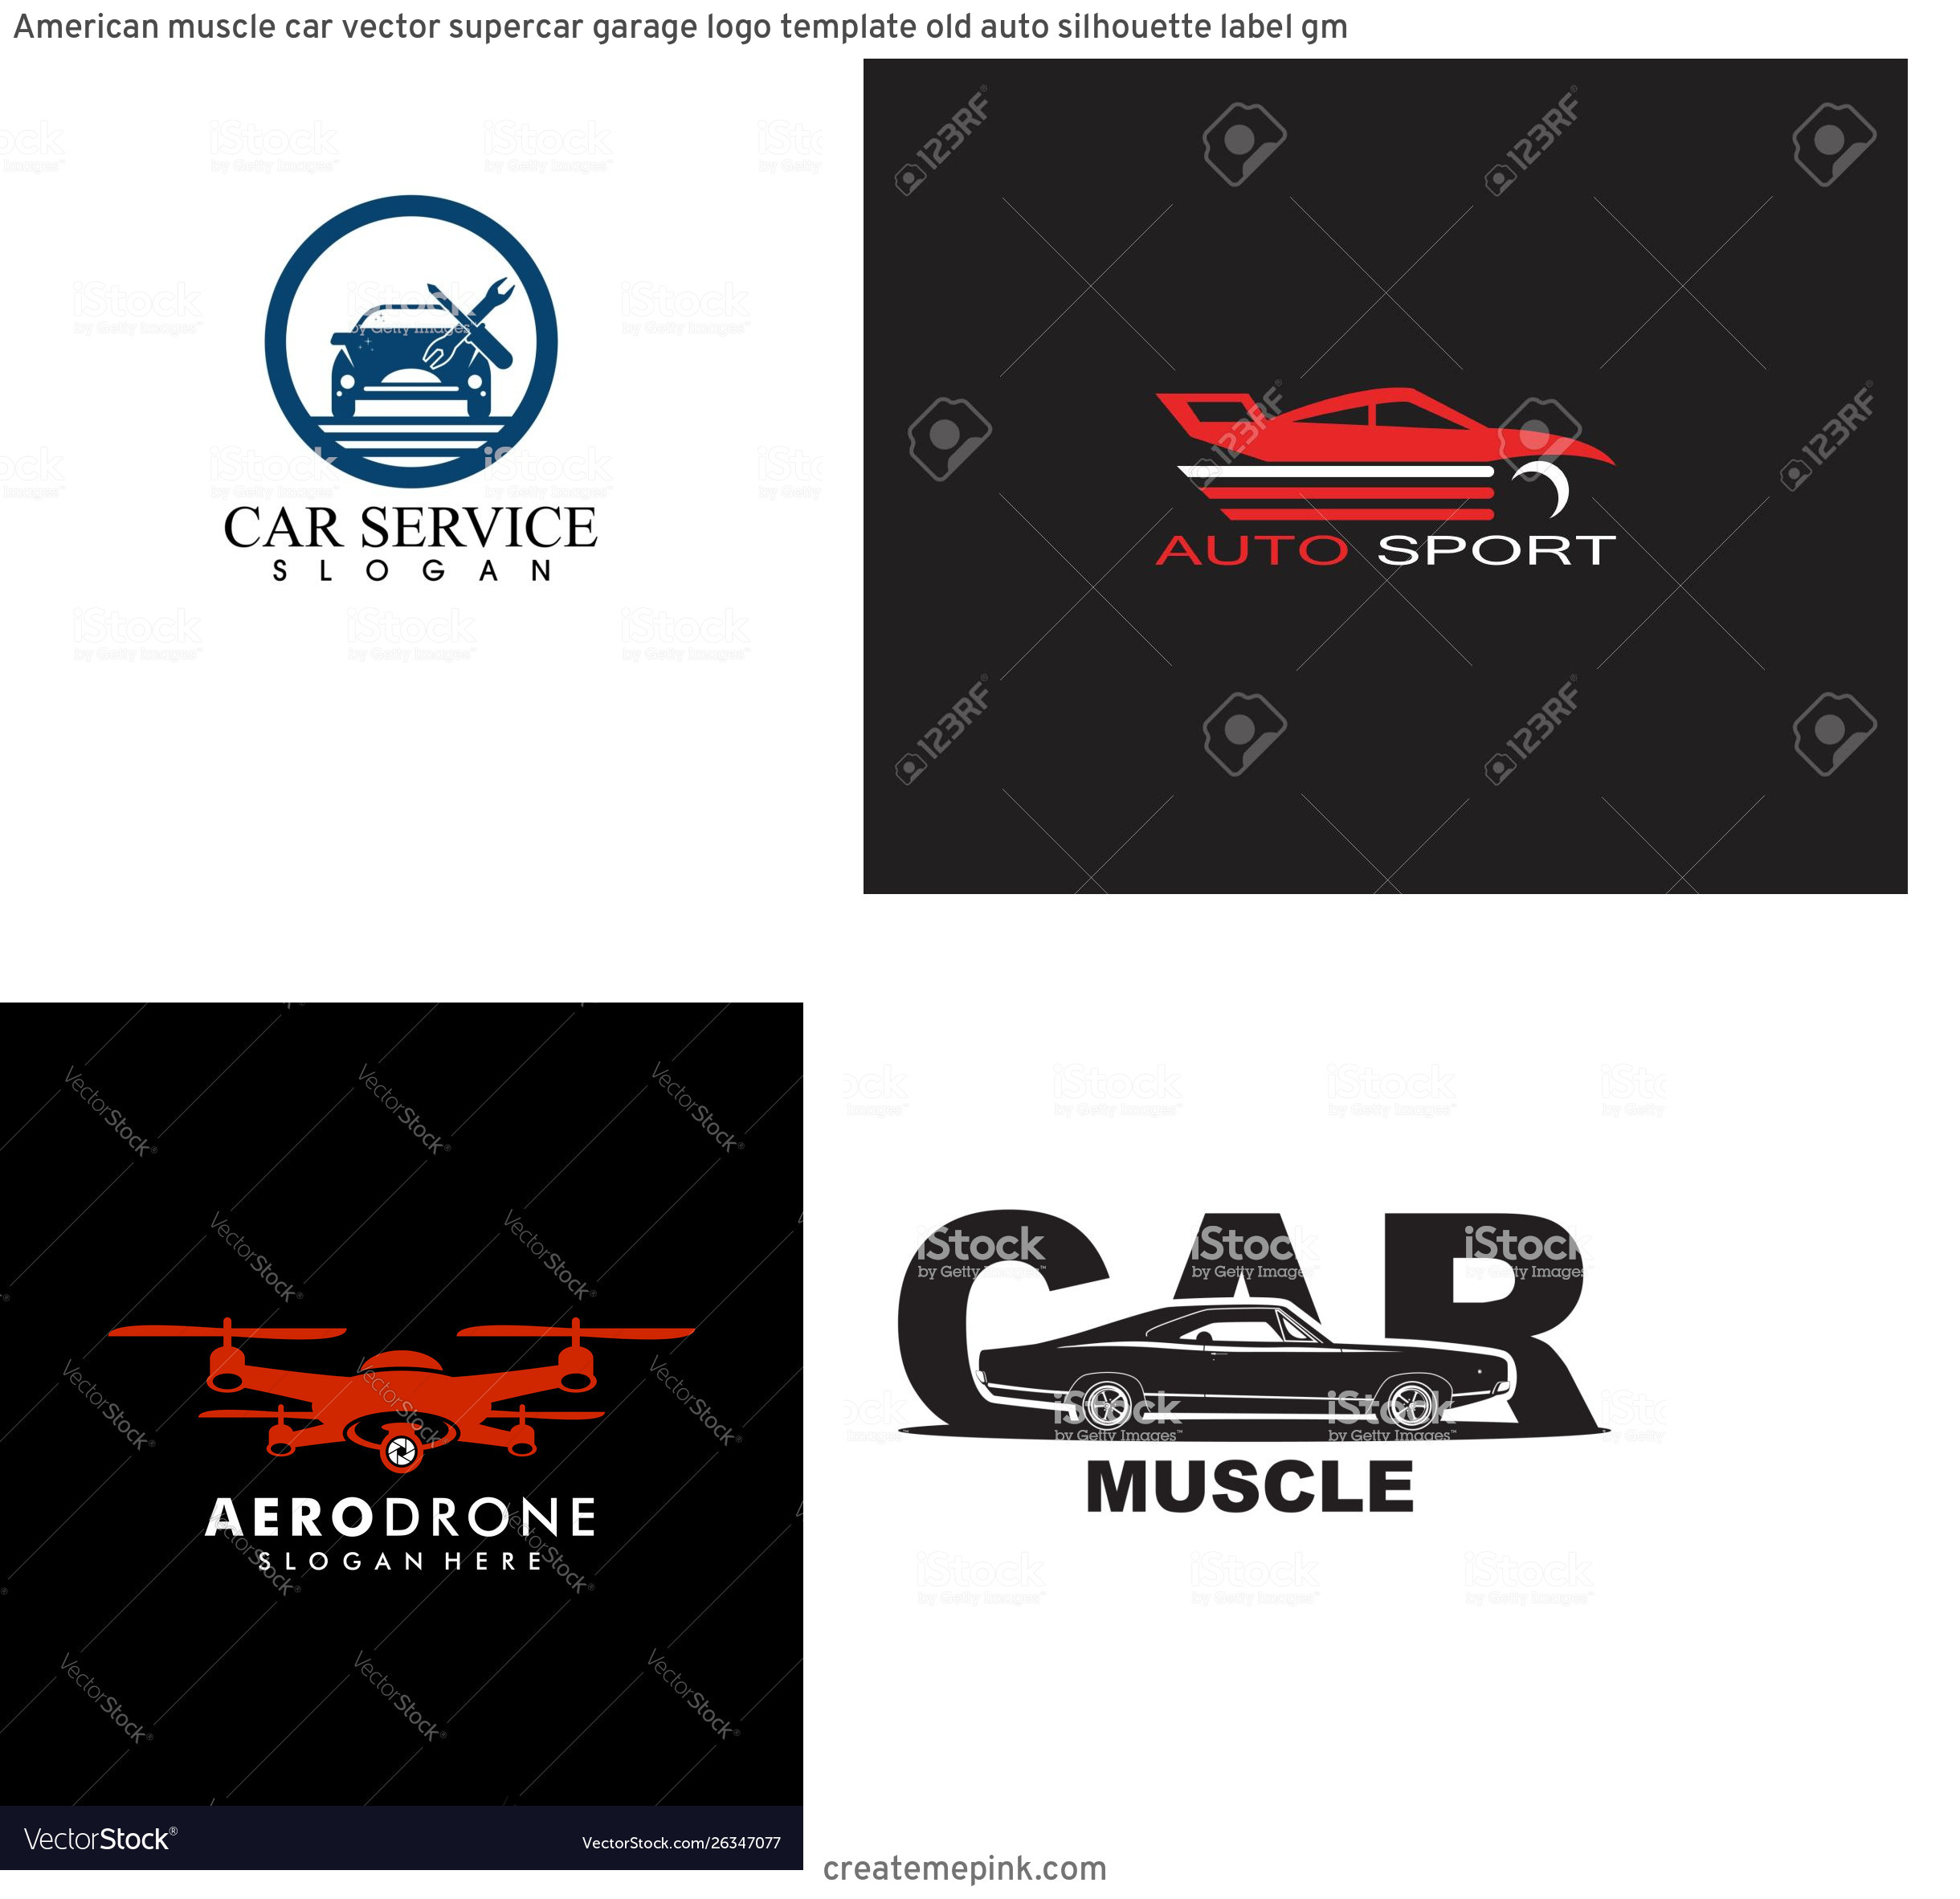 Dodge Charger Logo Vector: American Muscle Car Vector Supercar Garage Logo Template Old Auto Silhouette Label Gm